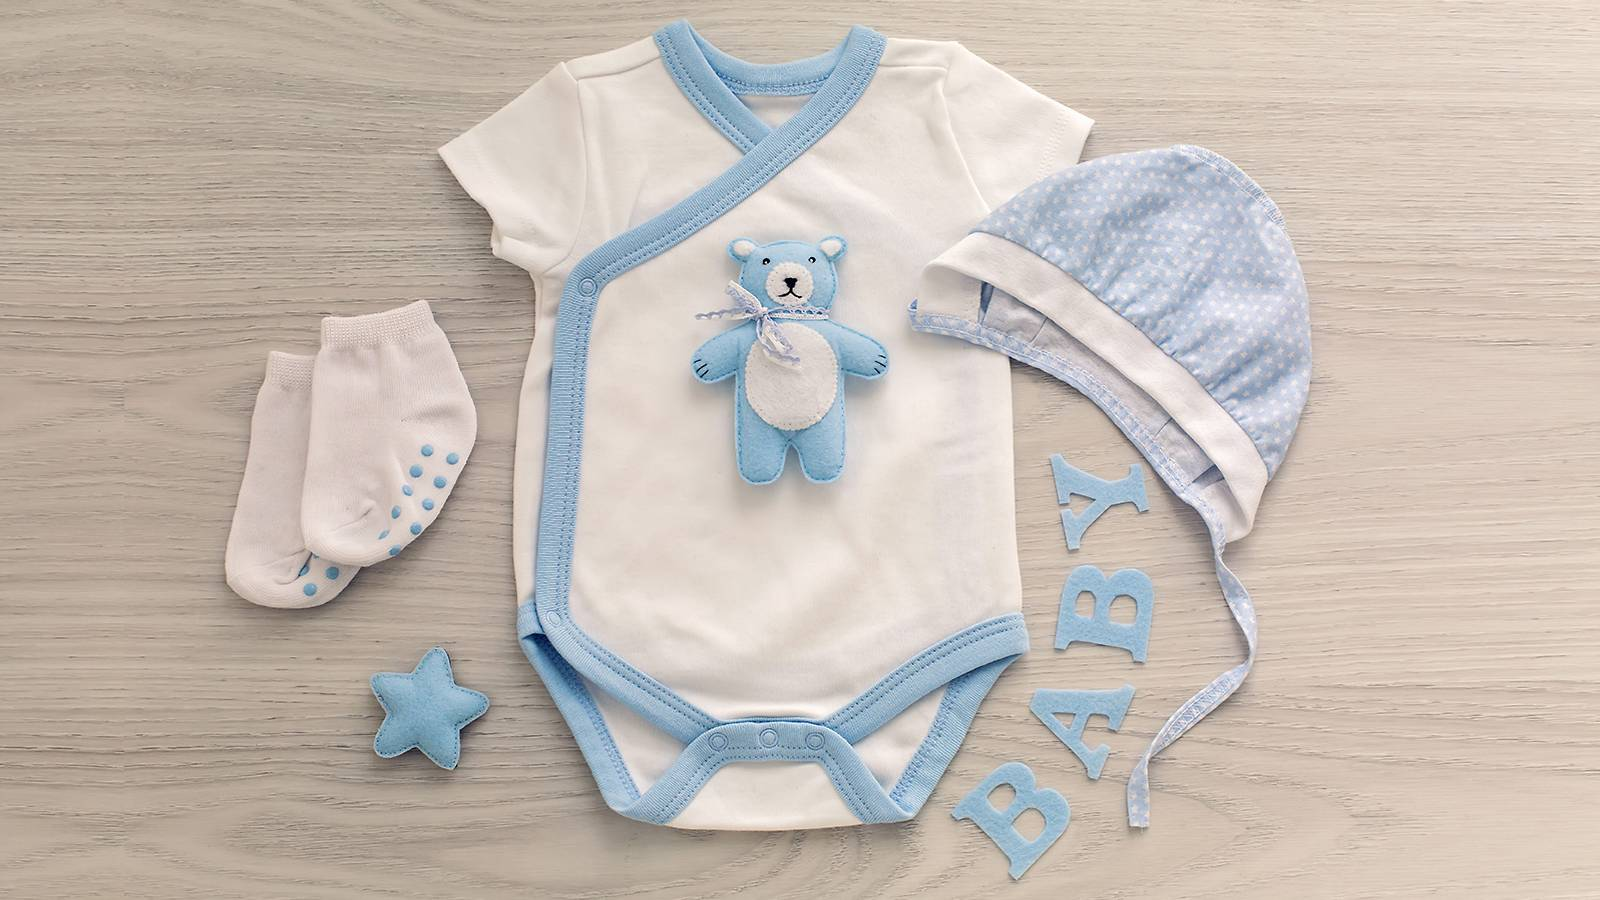 6 tips on buying clothes for your baby